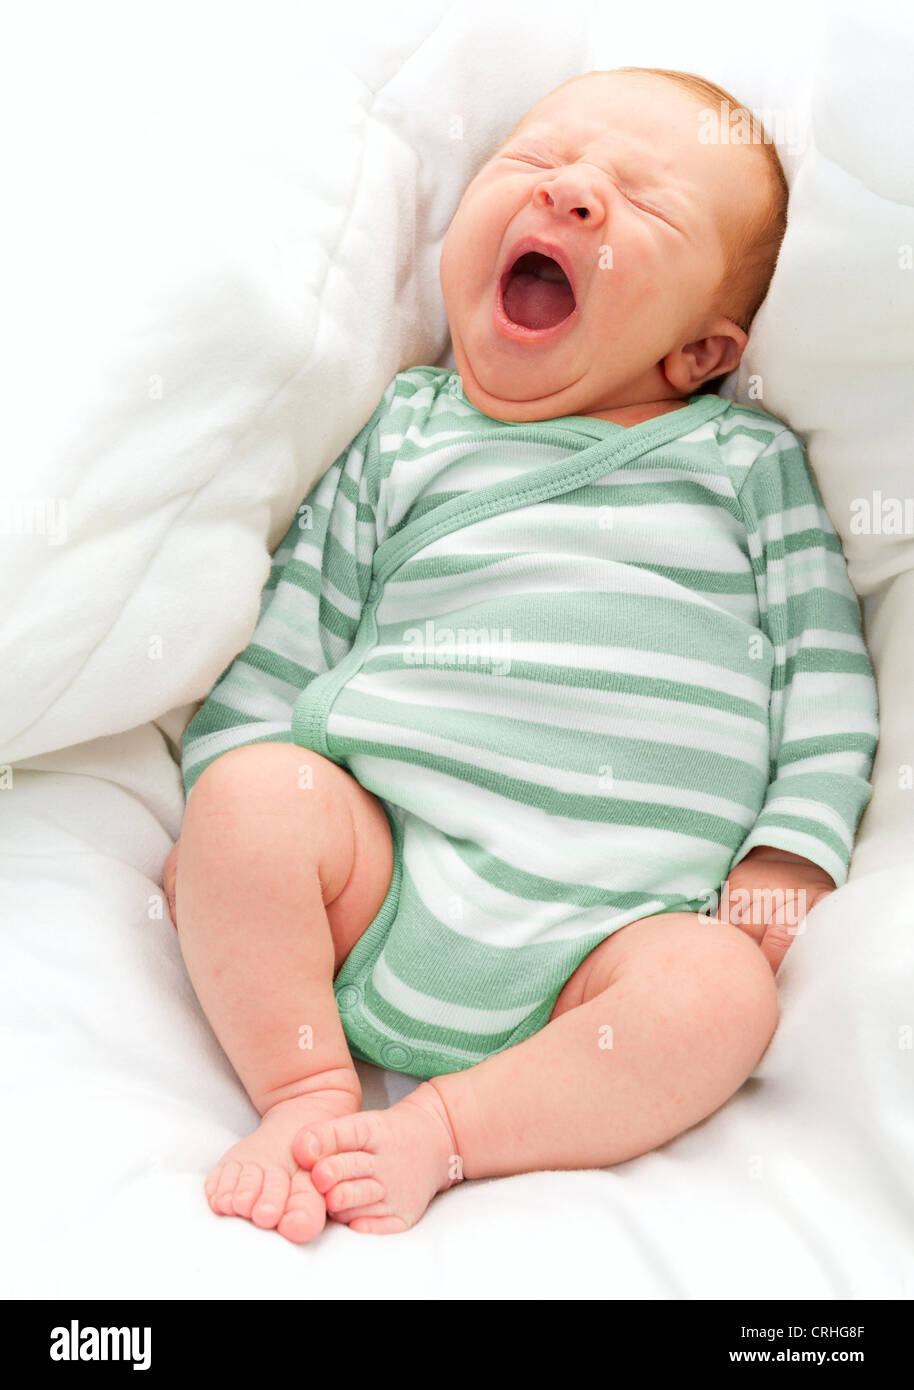 Yawning New Born Baby in the Bed - Stock Image